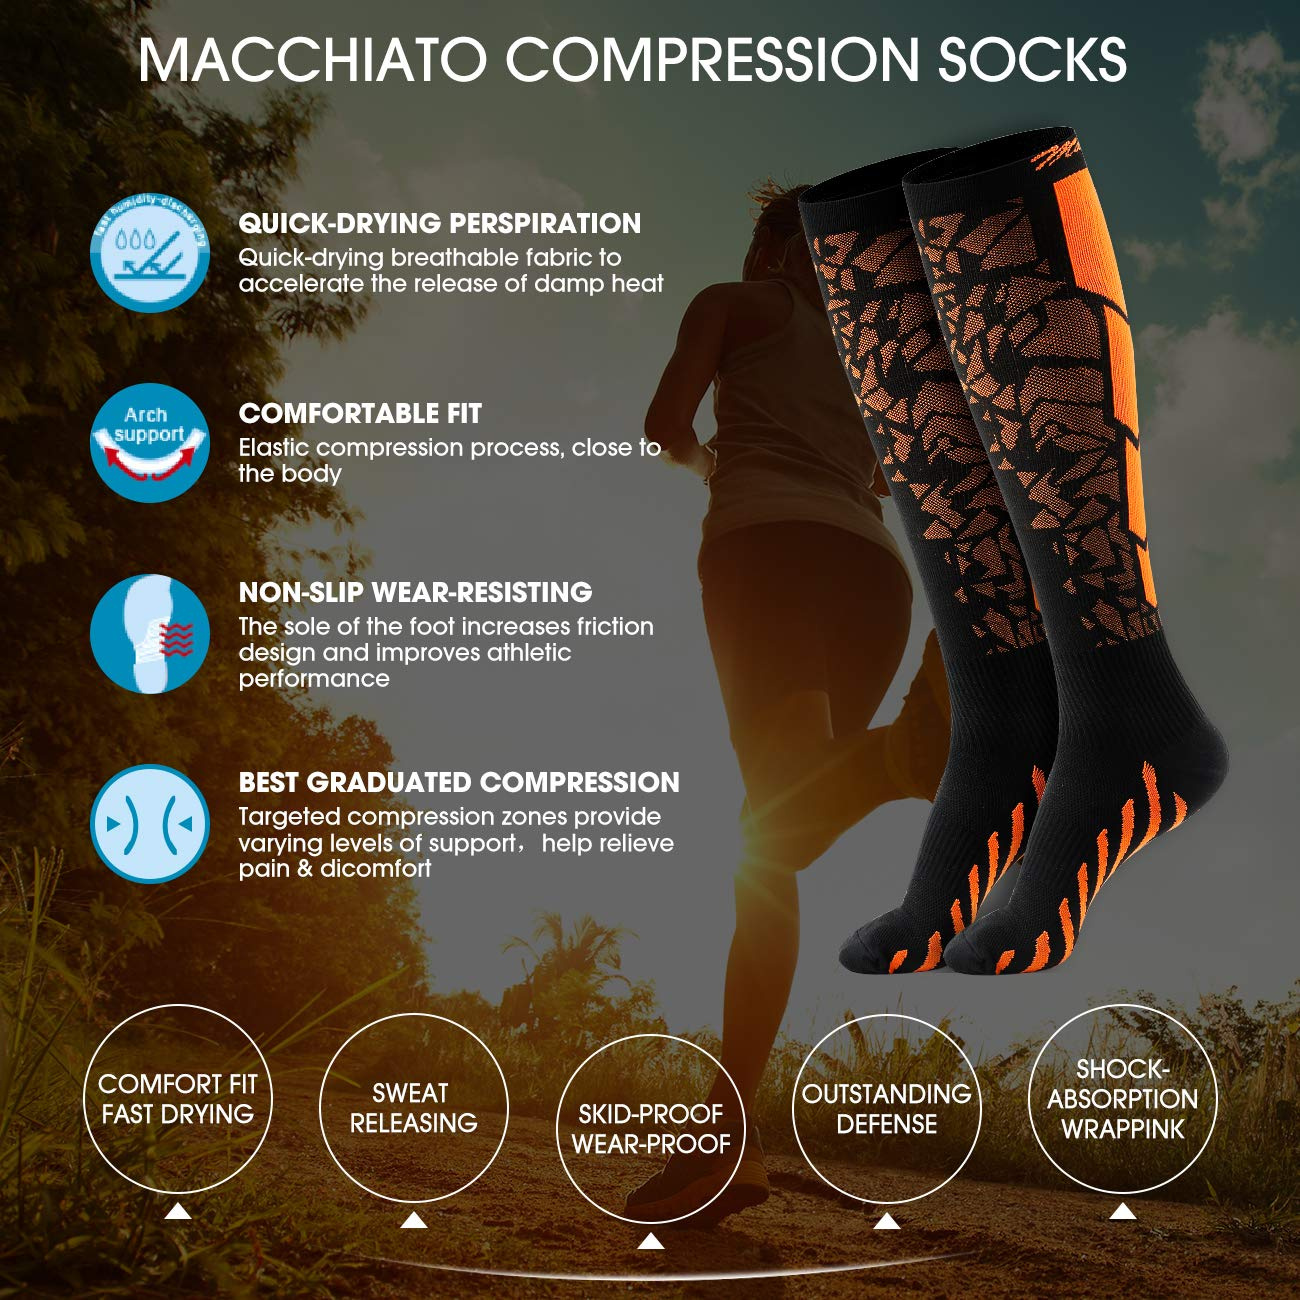 Macchiato 1//3 Pairs Compression Socks for Women and Men 20-30 mmHg-Best for Running,Athletic,Medical,Pregnancy and Travel